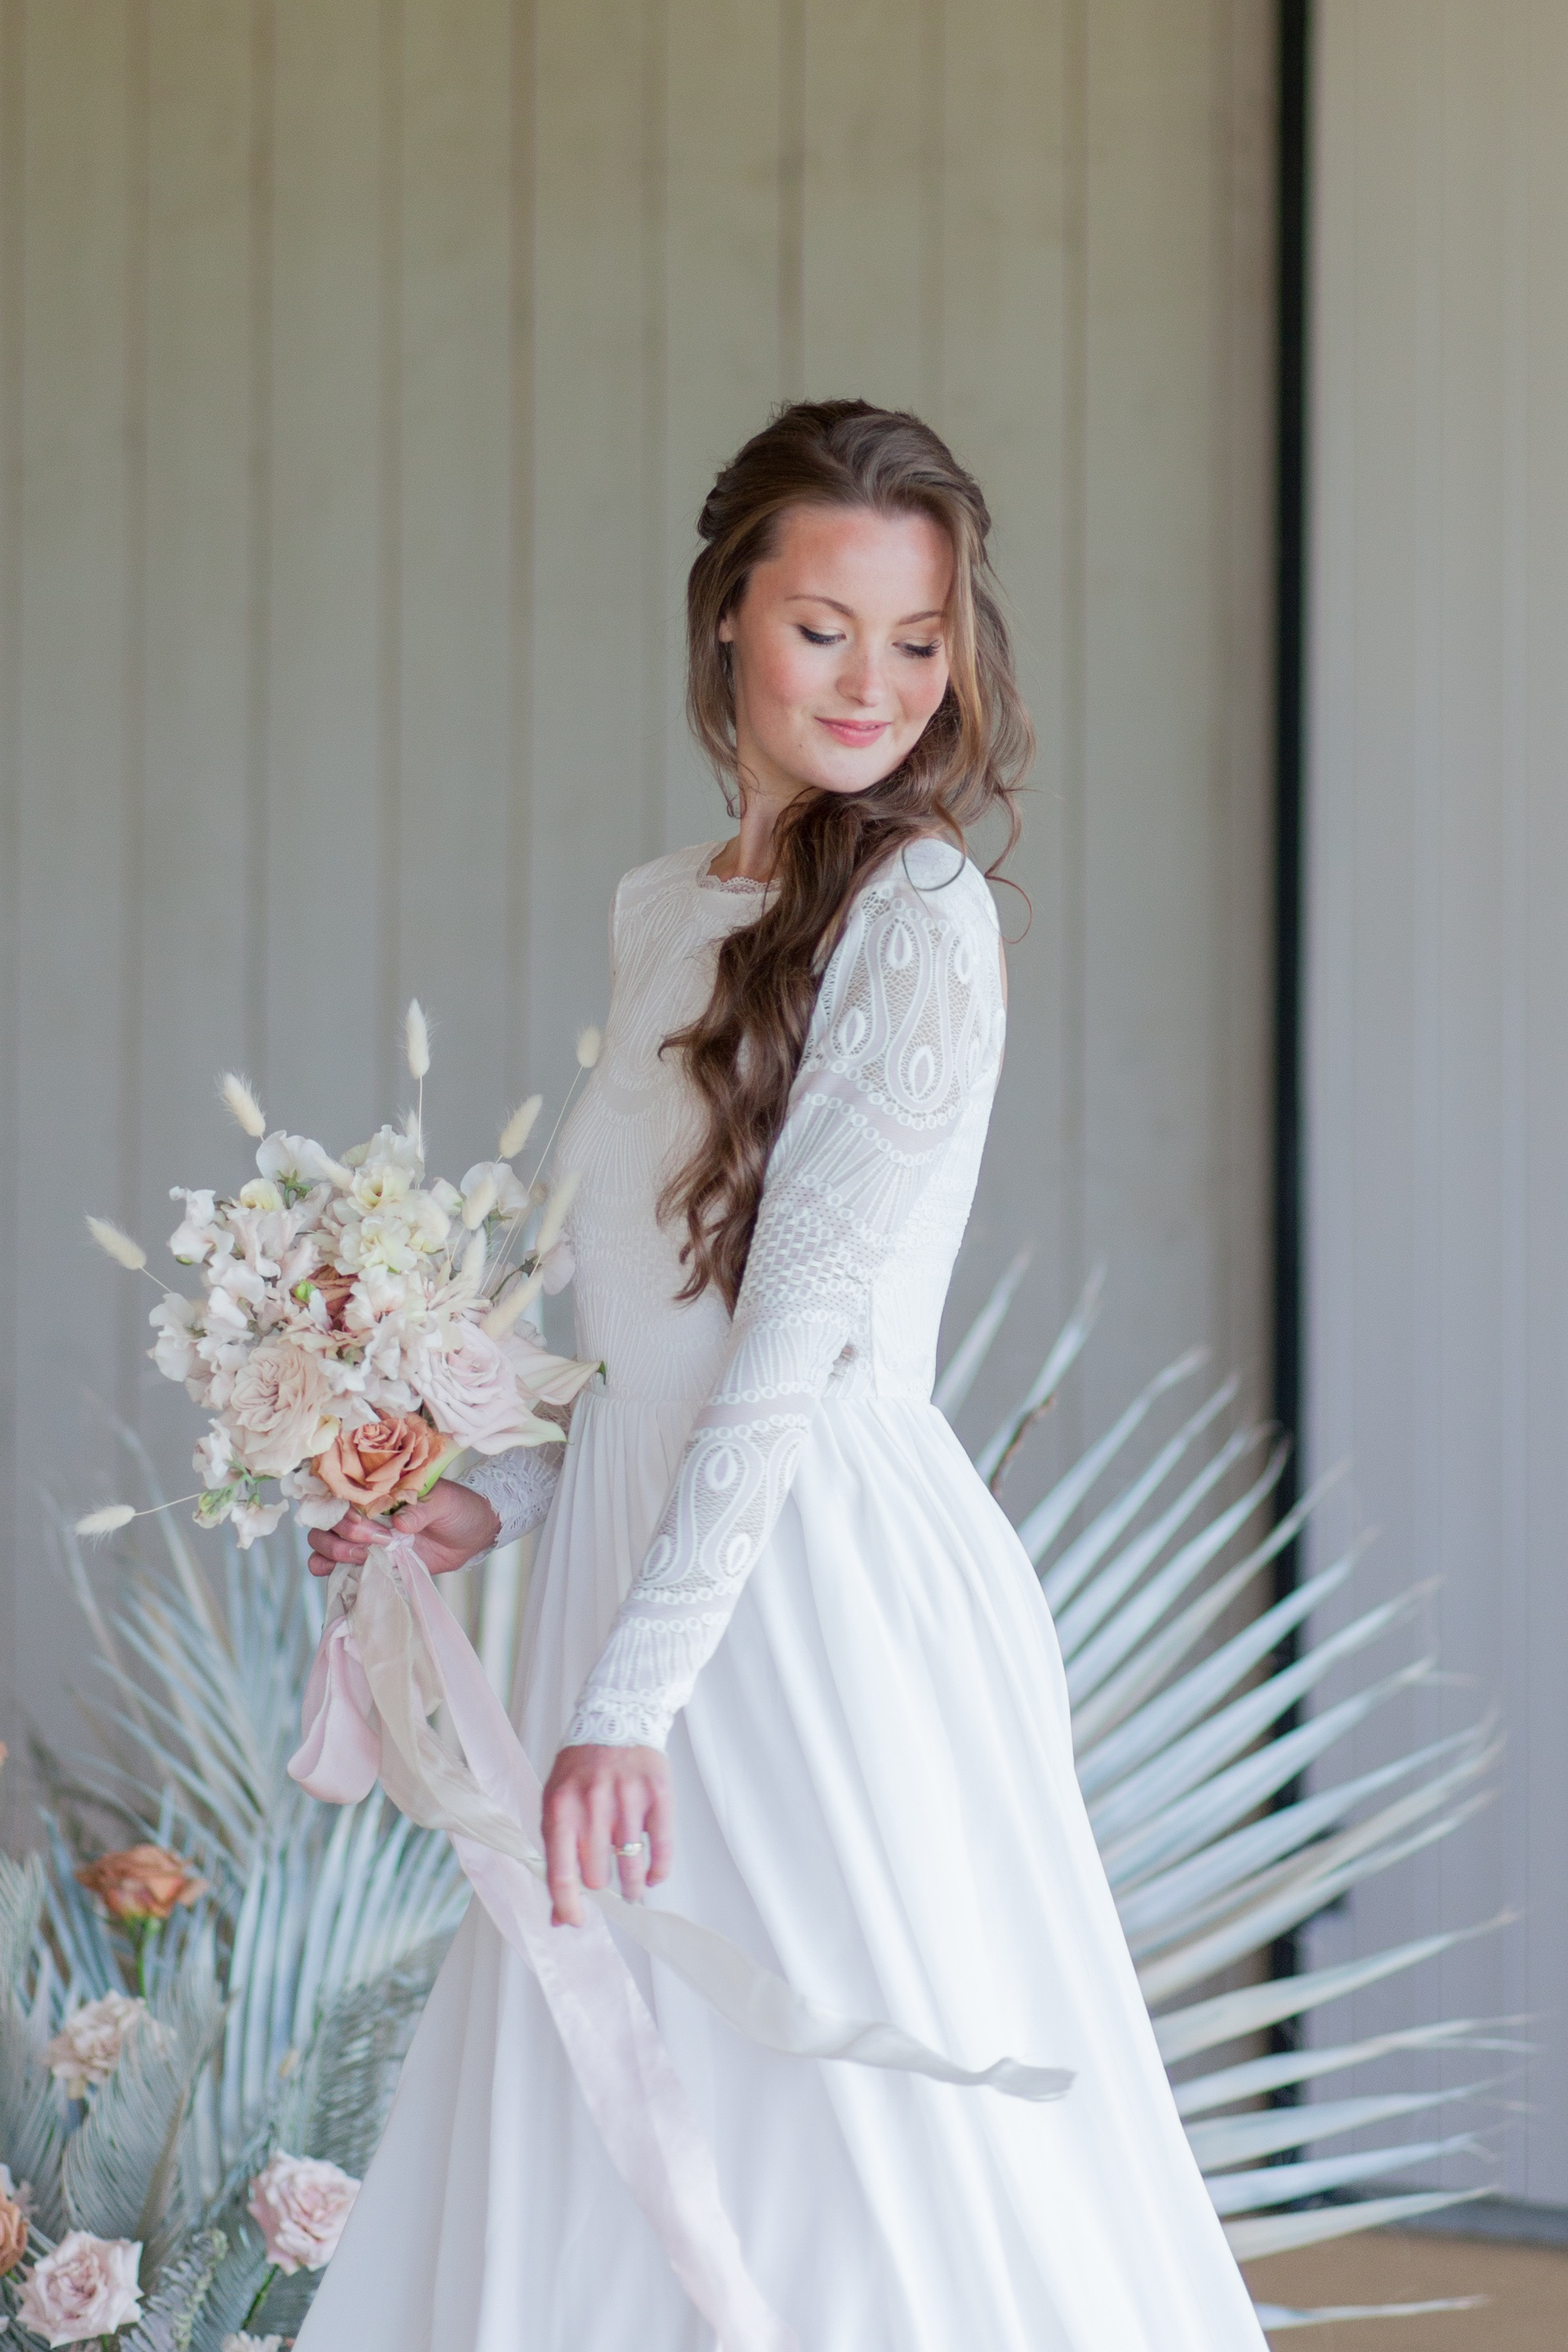 Relaxed, beachy vibes in this wedding gown from Luella's Bridal